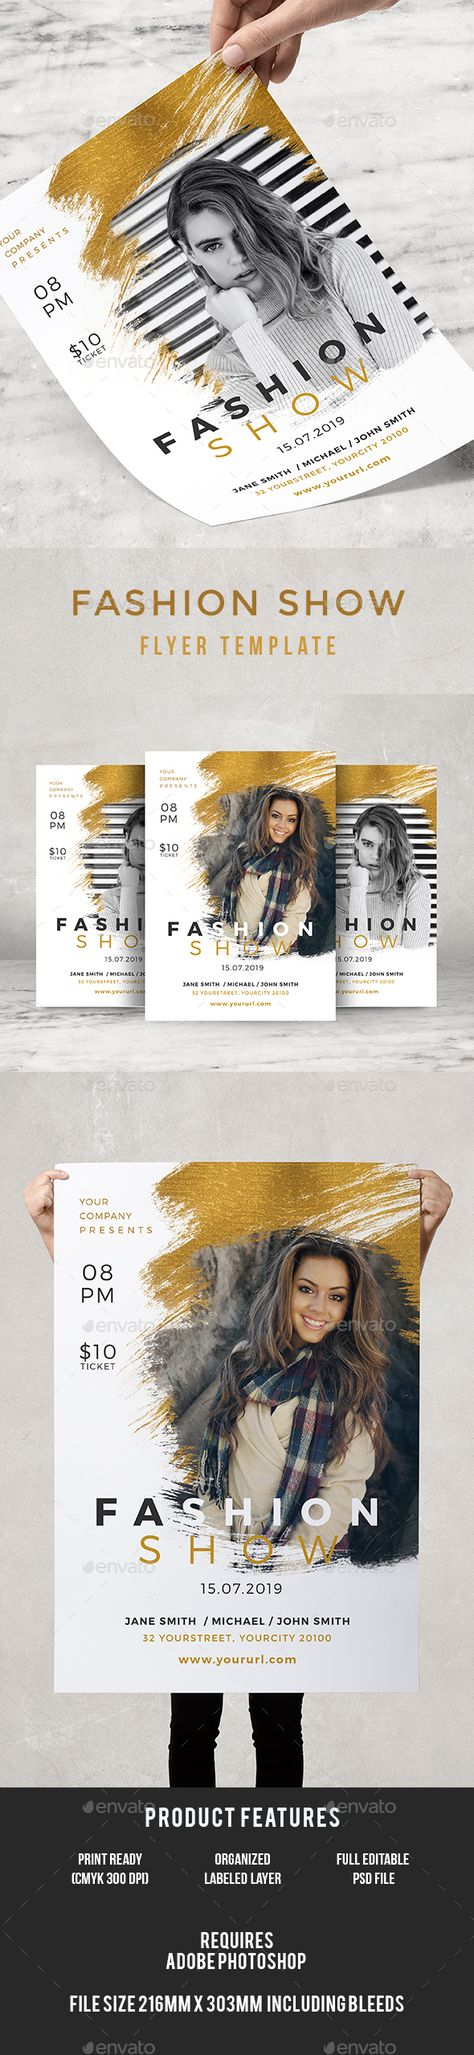 Fashion show flyer templates 21